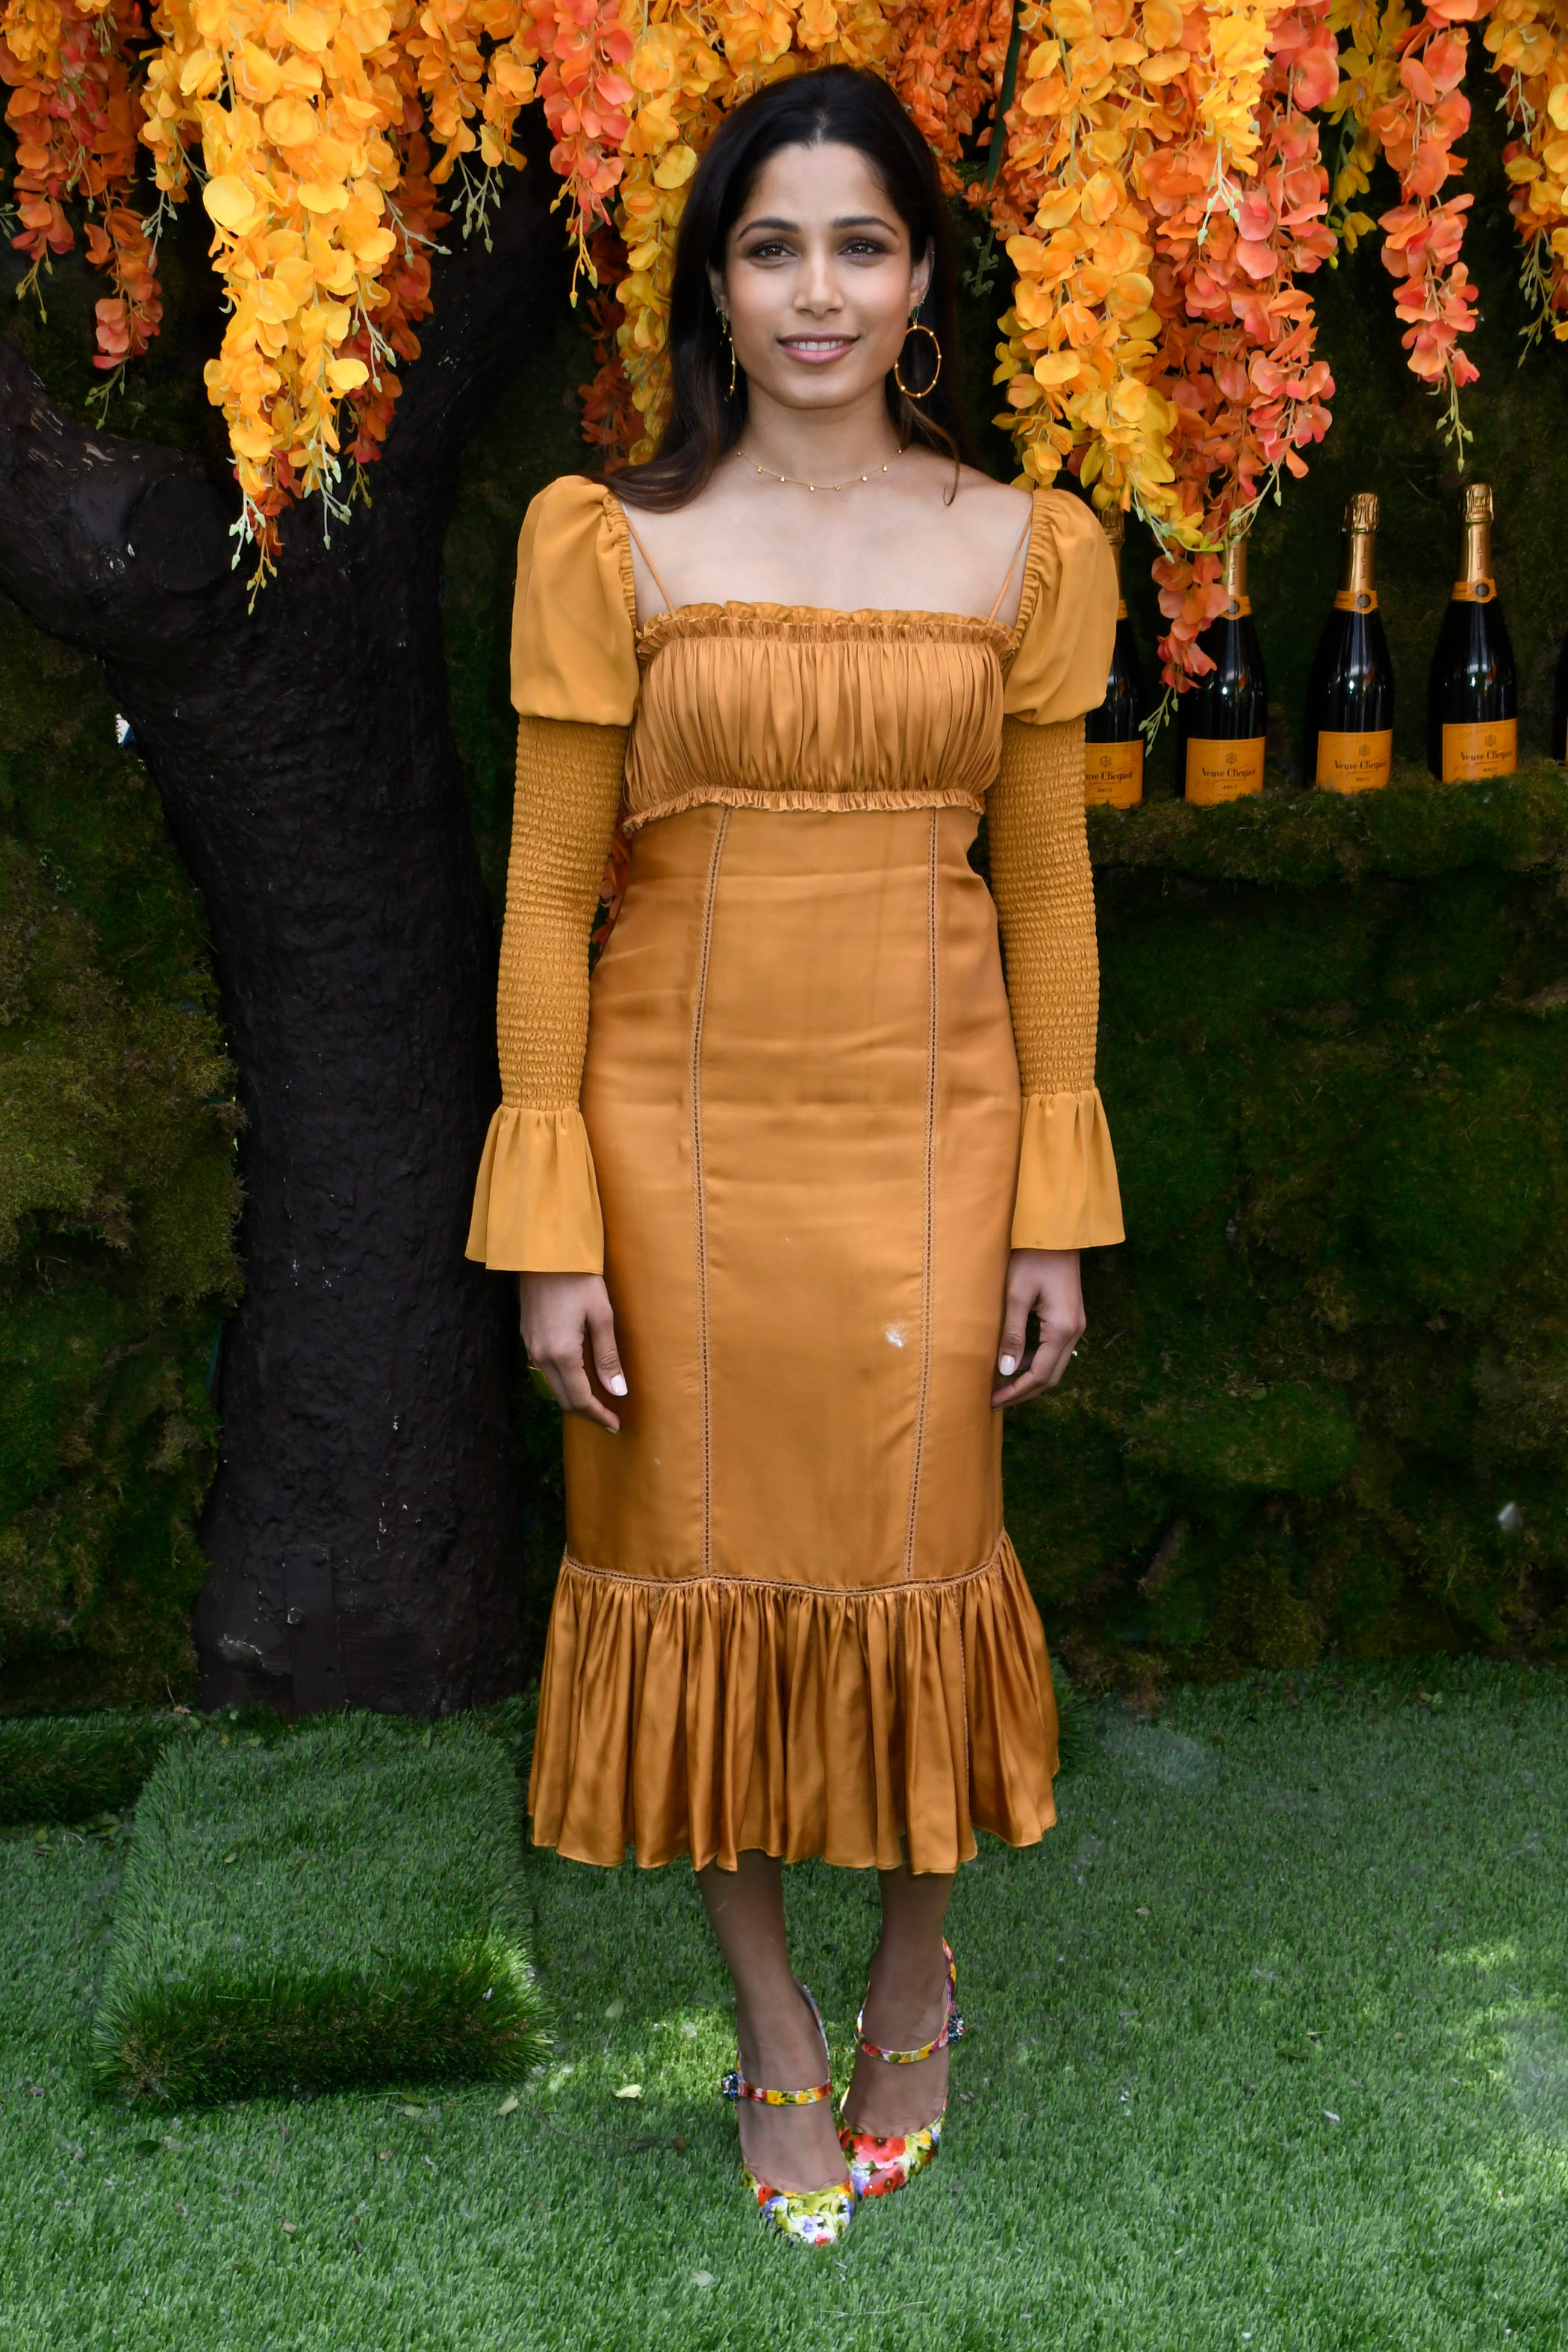 Freida Pinto attends the Veuve Clicquot Polo Classic at Liberty State Park in New Jersey on June 2, 2018.